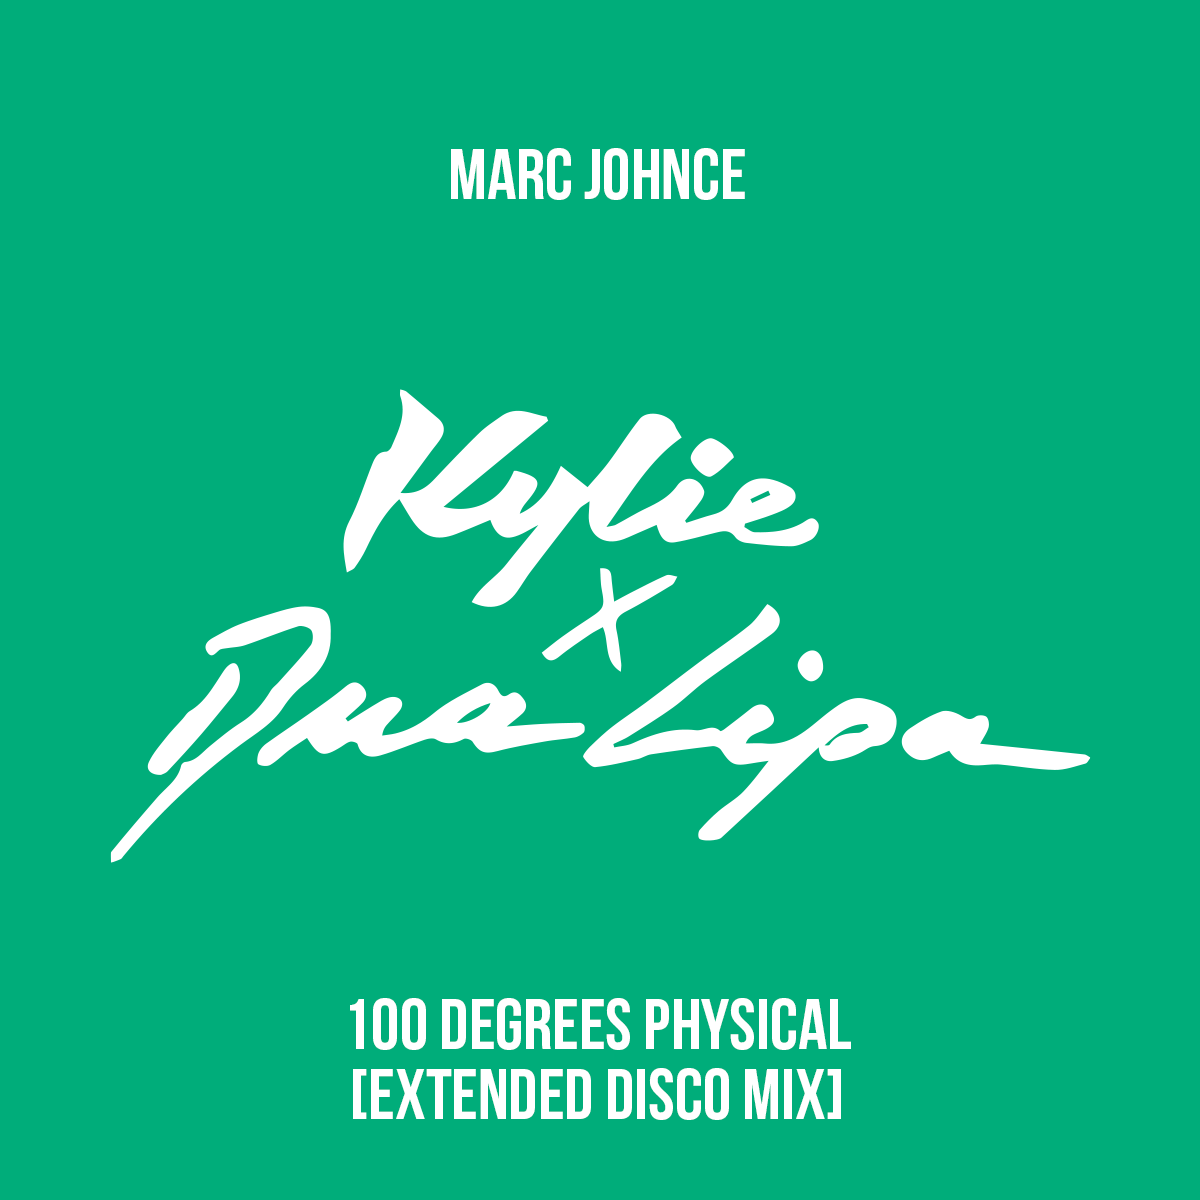 Marc Johnce - 100 Degrees Physical (Extended Disco Mix)